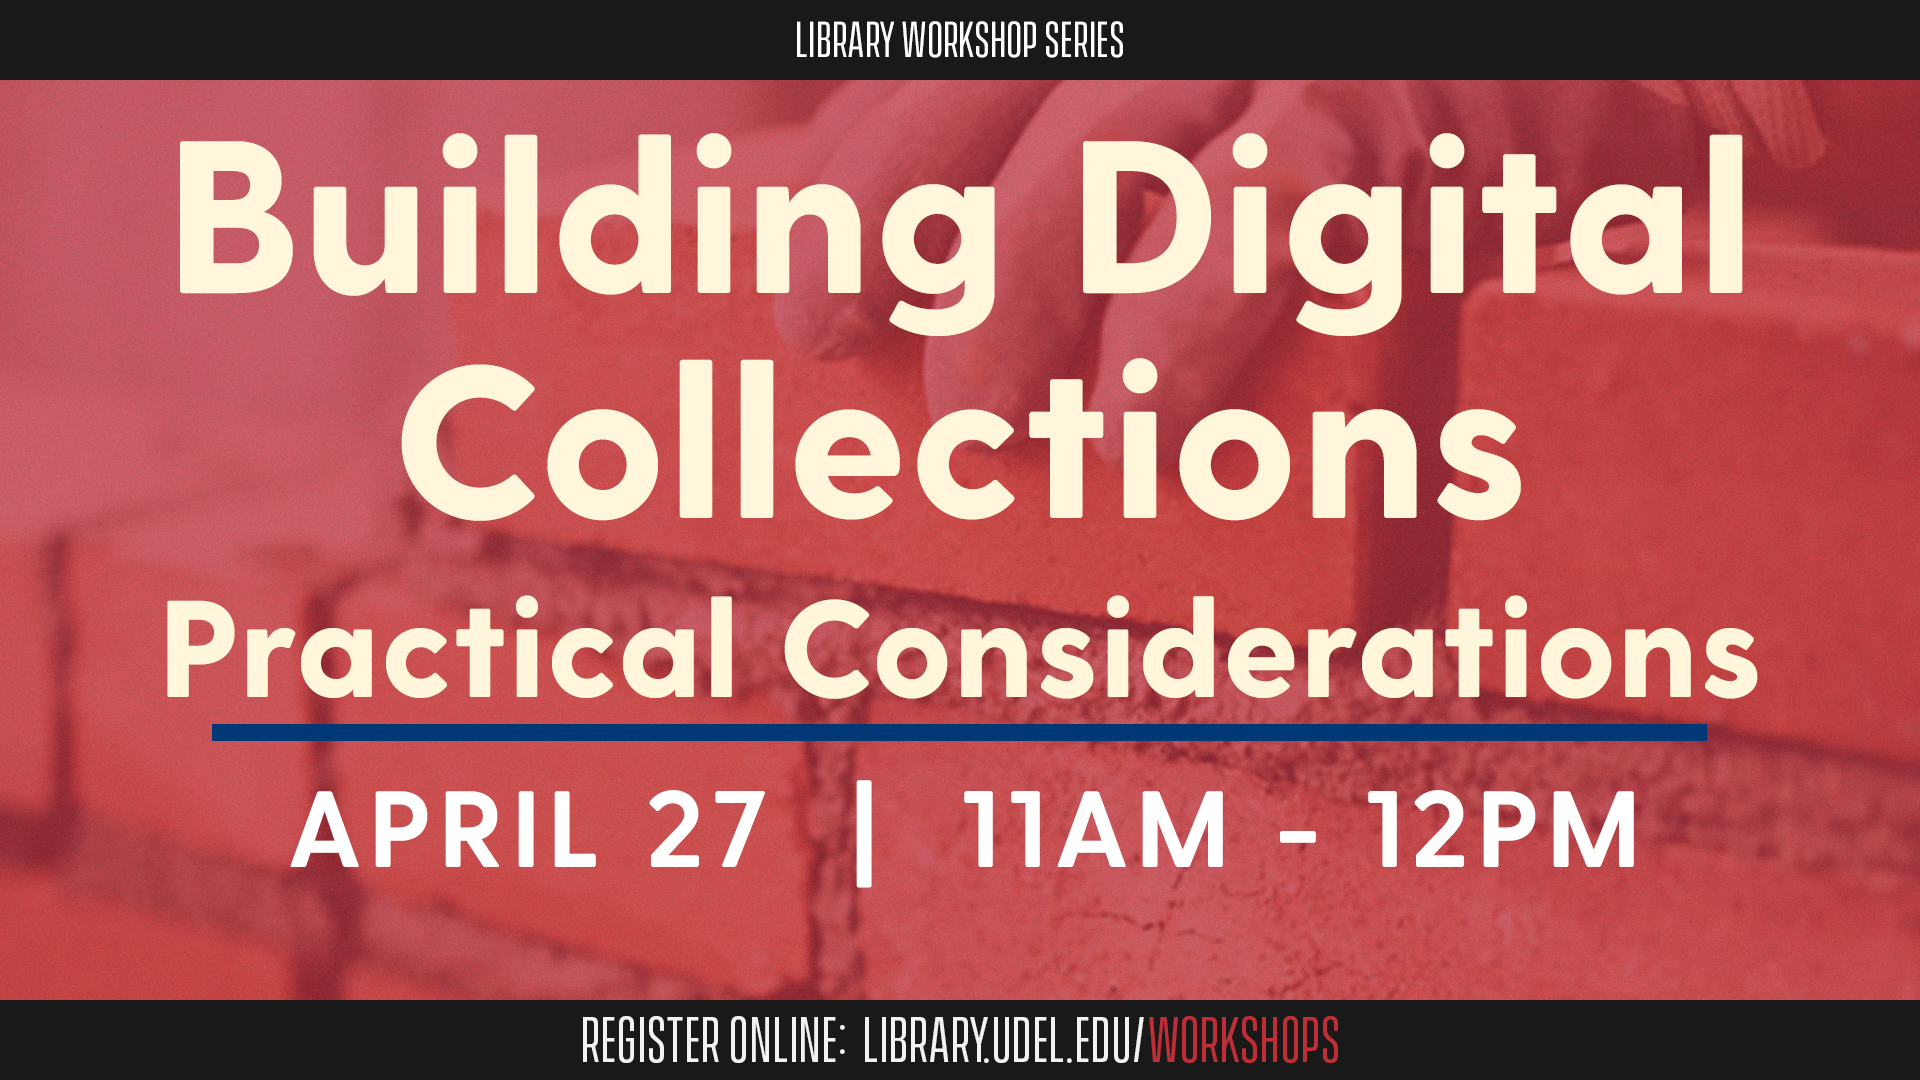 Promotional image for Building Digital Collections: Practical Considerations